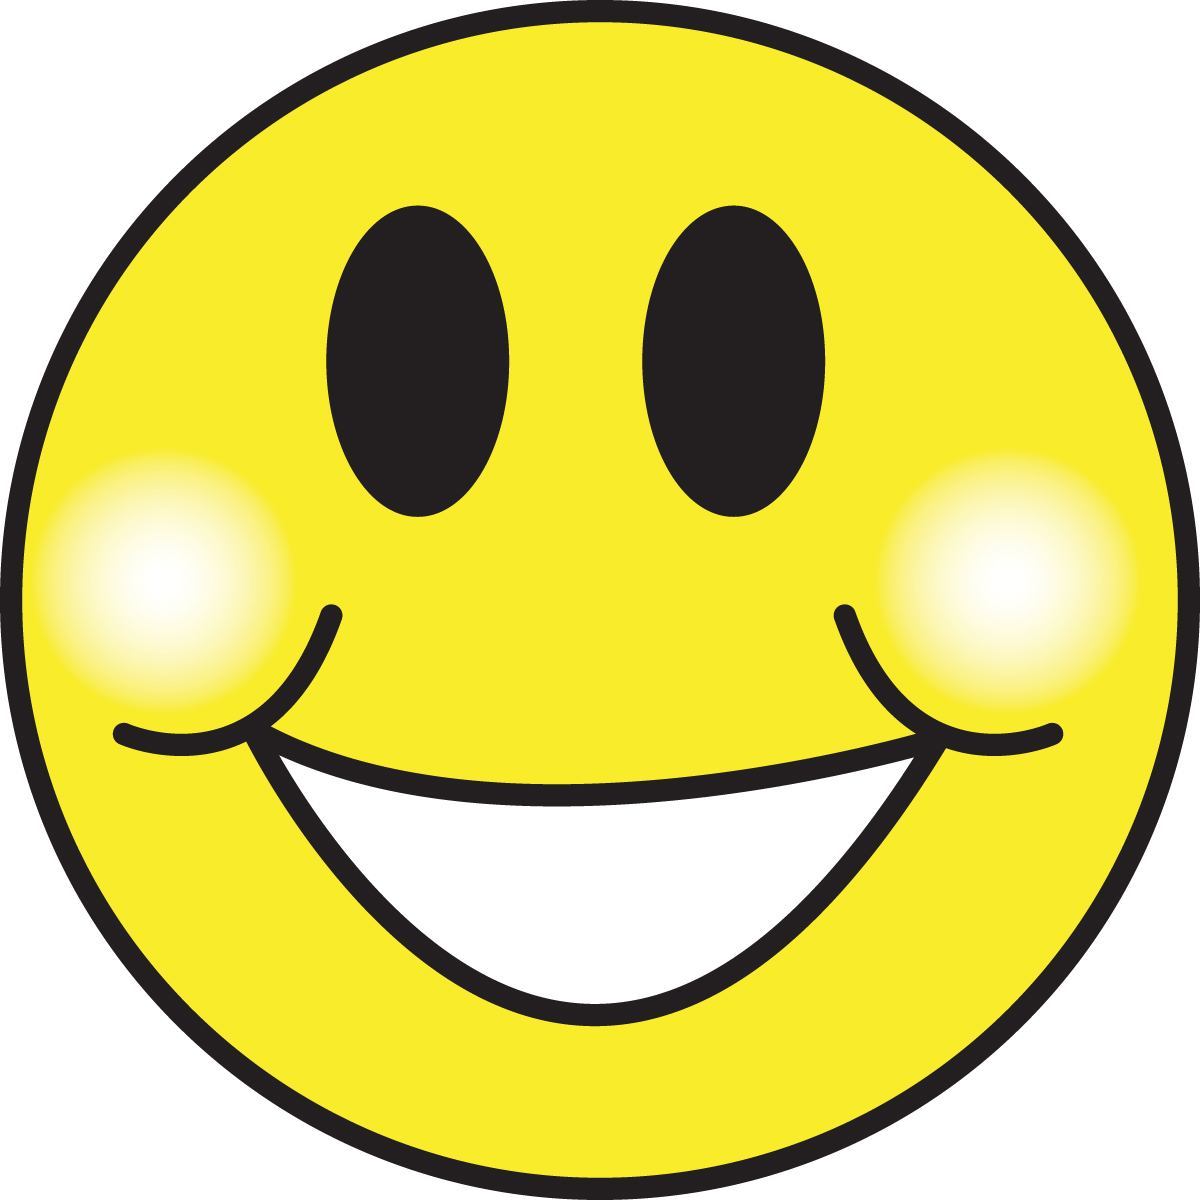 smiley%20face%20clip%20art%20animated